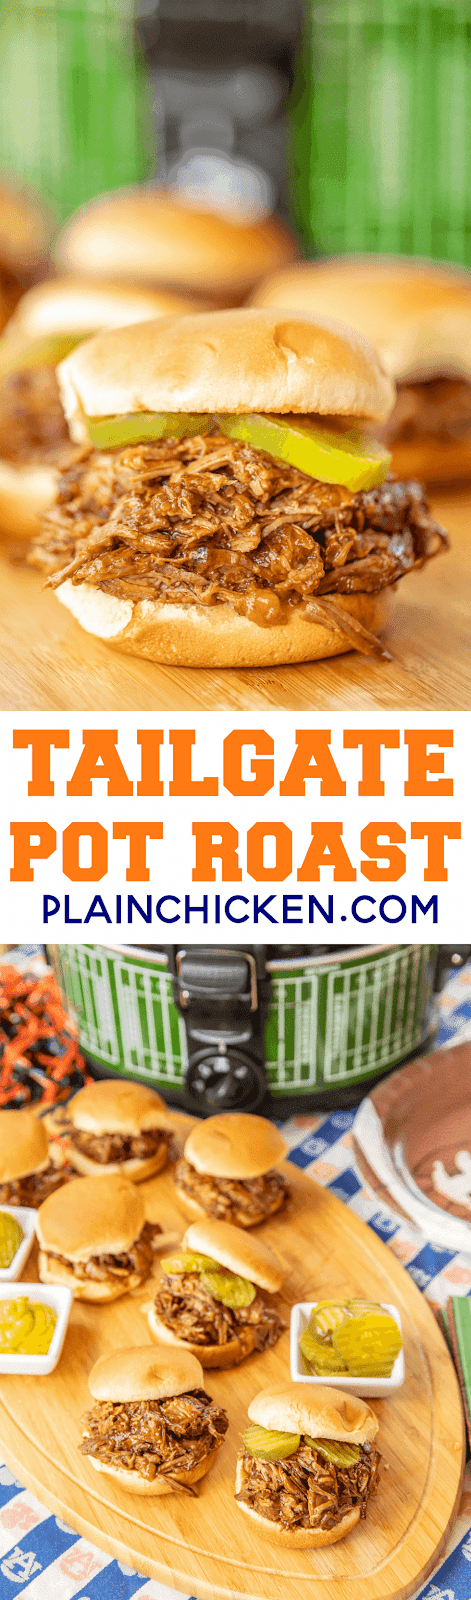 TTailgate Pot Roast - Coca Cola Pot Roast - great to feed a crowd! Not just for tailgating! Makes a delicious lunch or dinner too. We like to serve the roast on slider buns with pickles and mustard. Pot roast, coca-cola, Worcestershire, onion, chili sauce. Dump everything in the crock-pot and let it do all the work! SO easy and seriously delicious! #slowcooker #crockpot #roast #sliders #tailgating